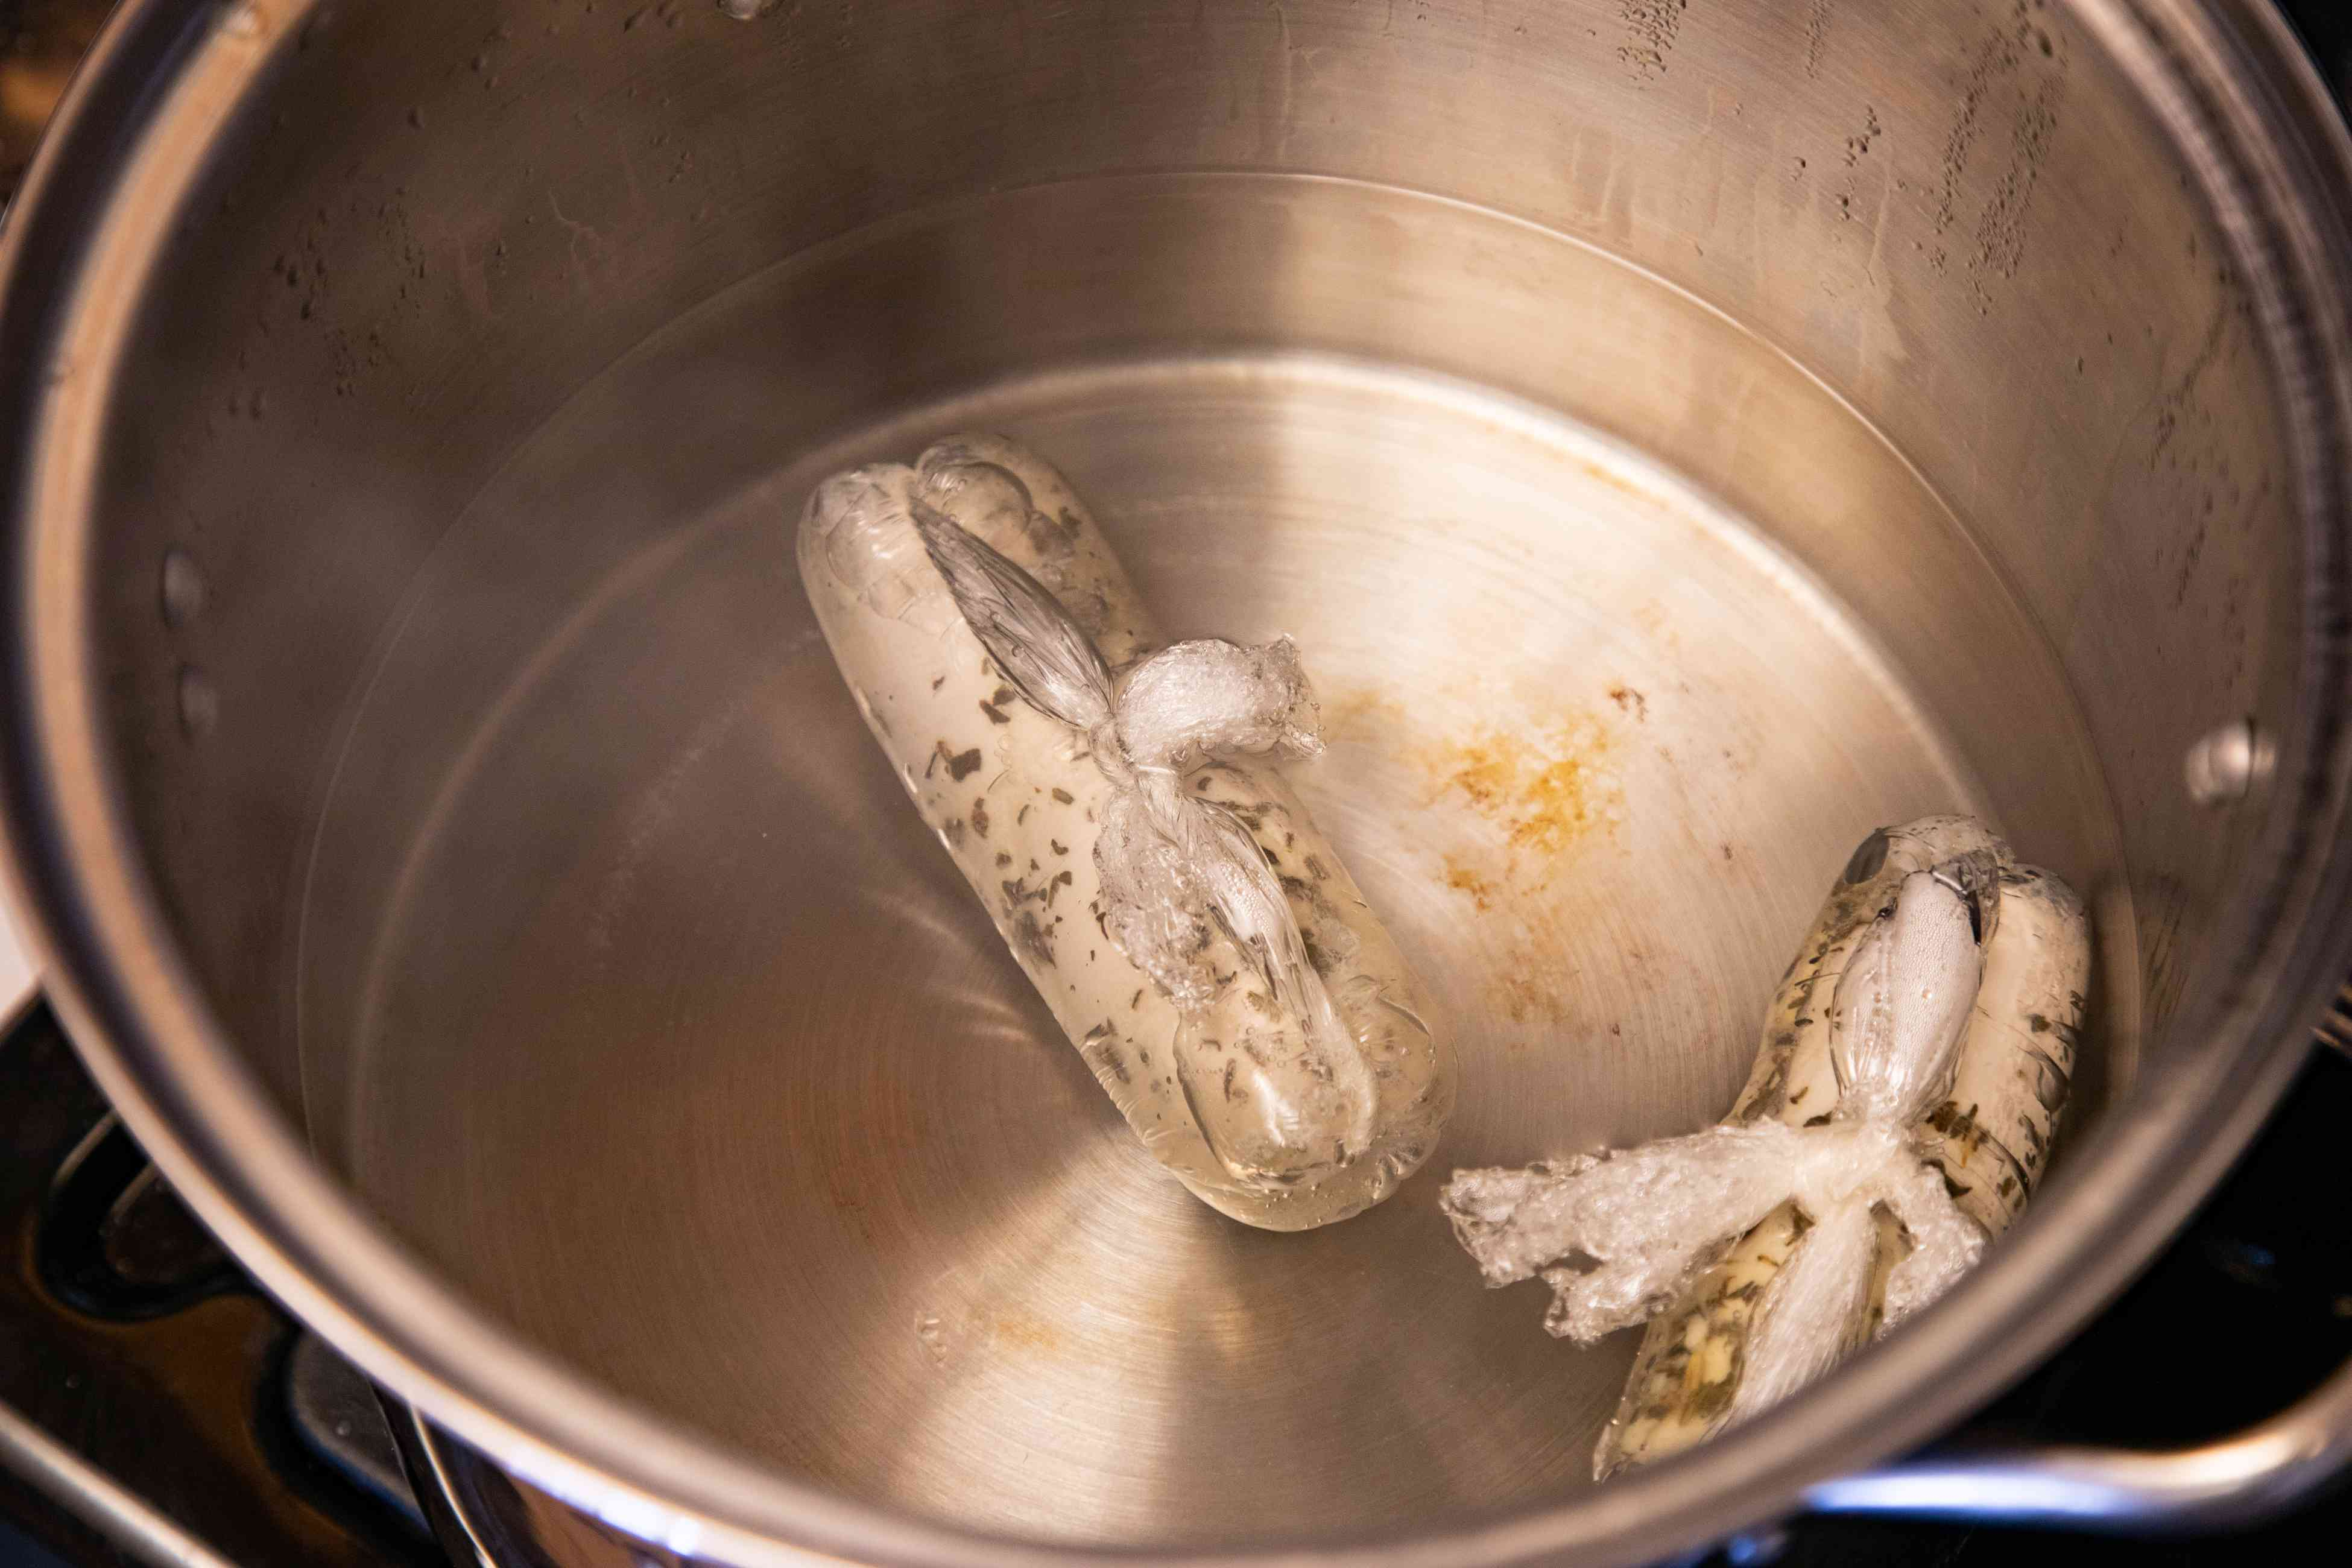 Plastic wrapped chicken in a large pot of water to make a poached chicken recipe.